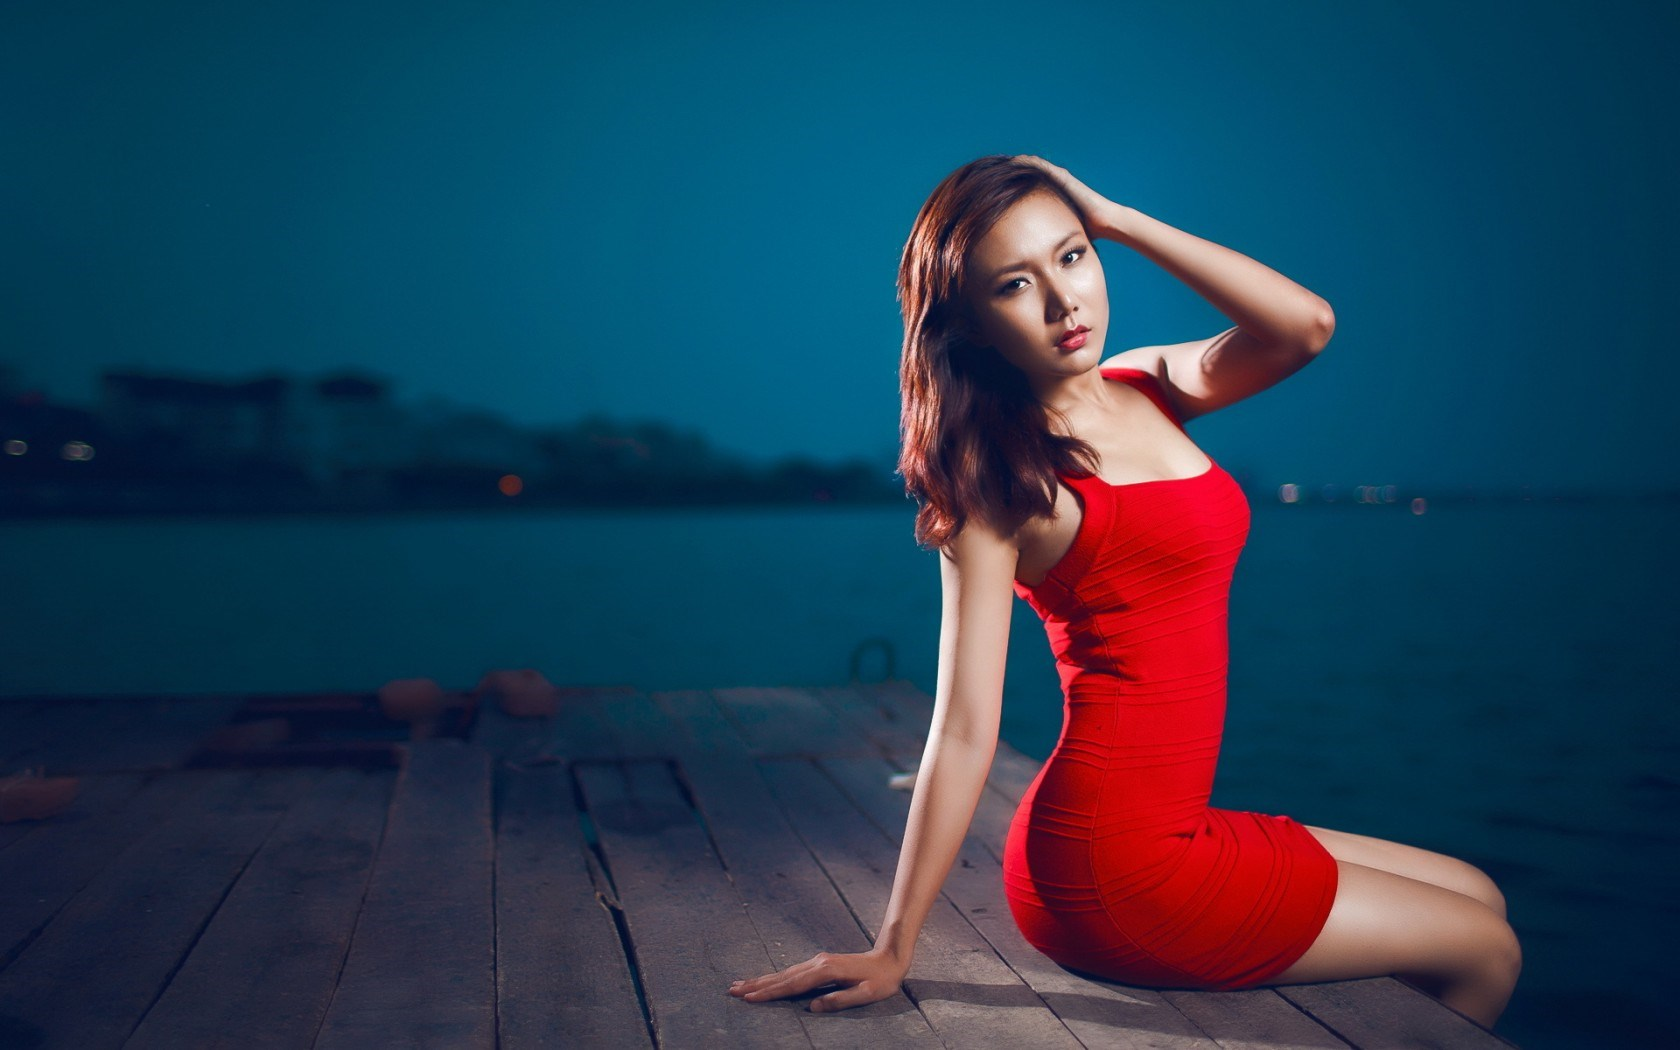 Model Girl Asian Dress Red